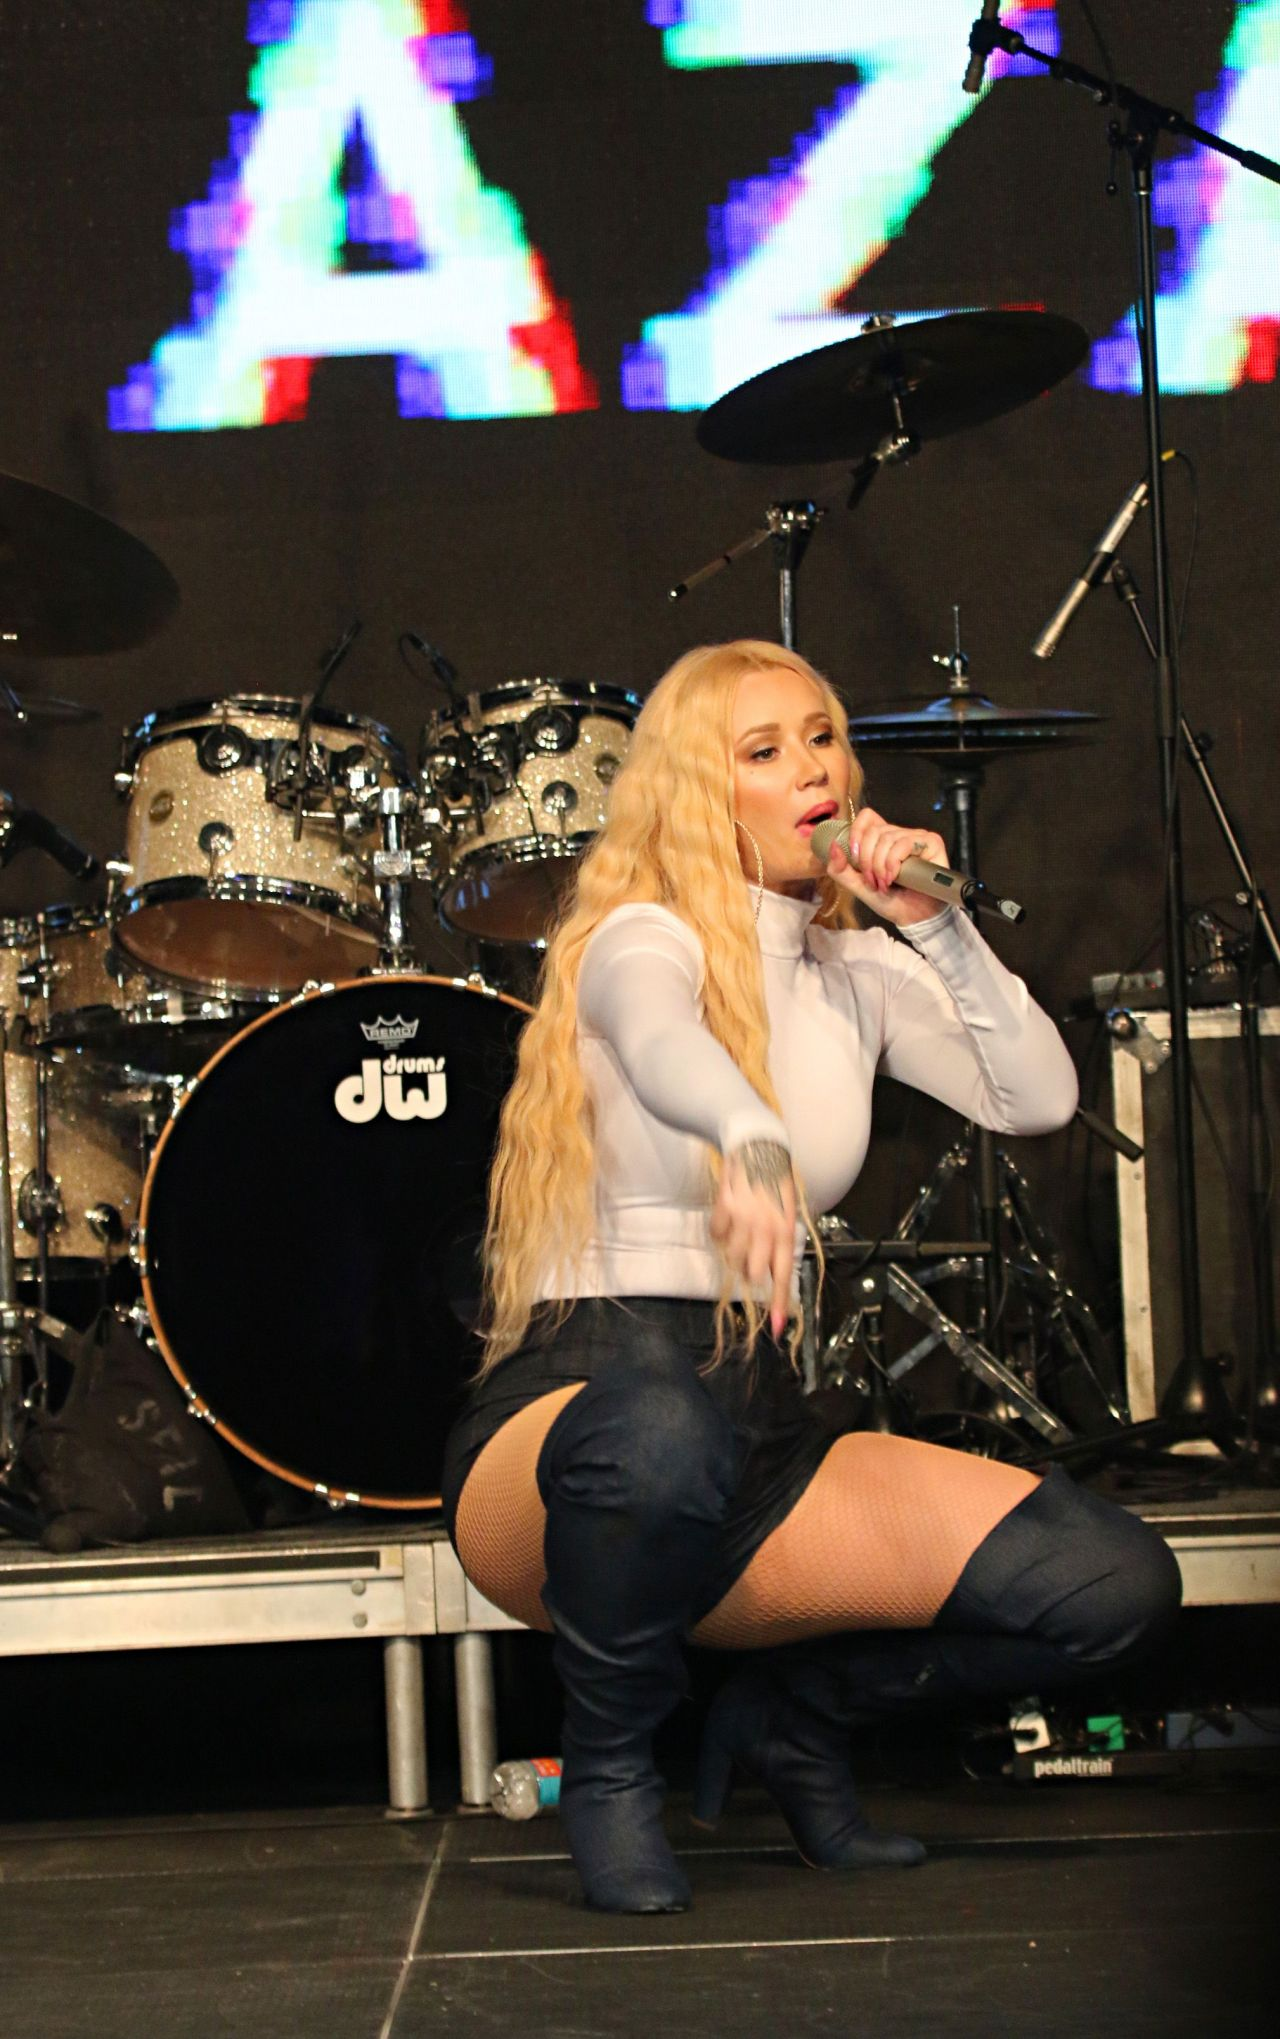 Iggy azalea work live and hot 10